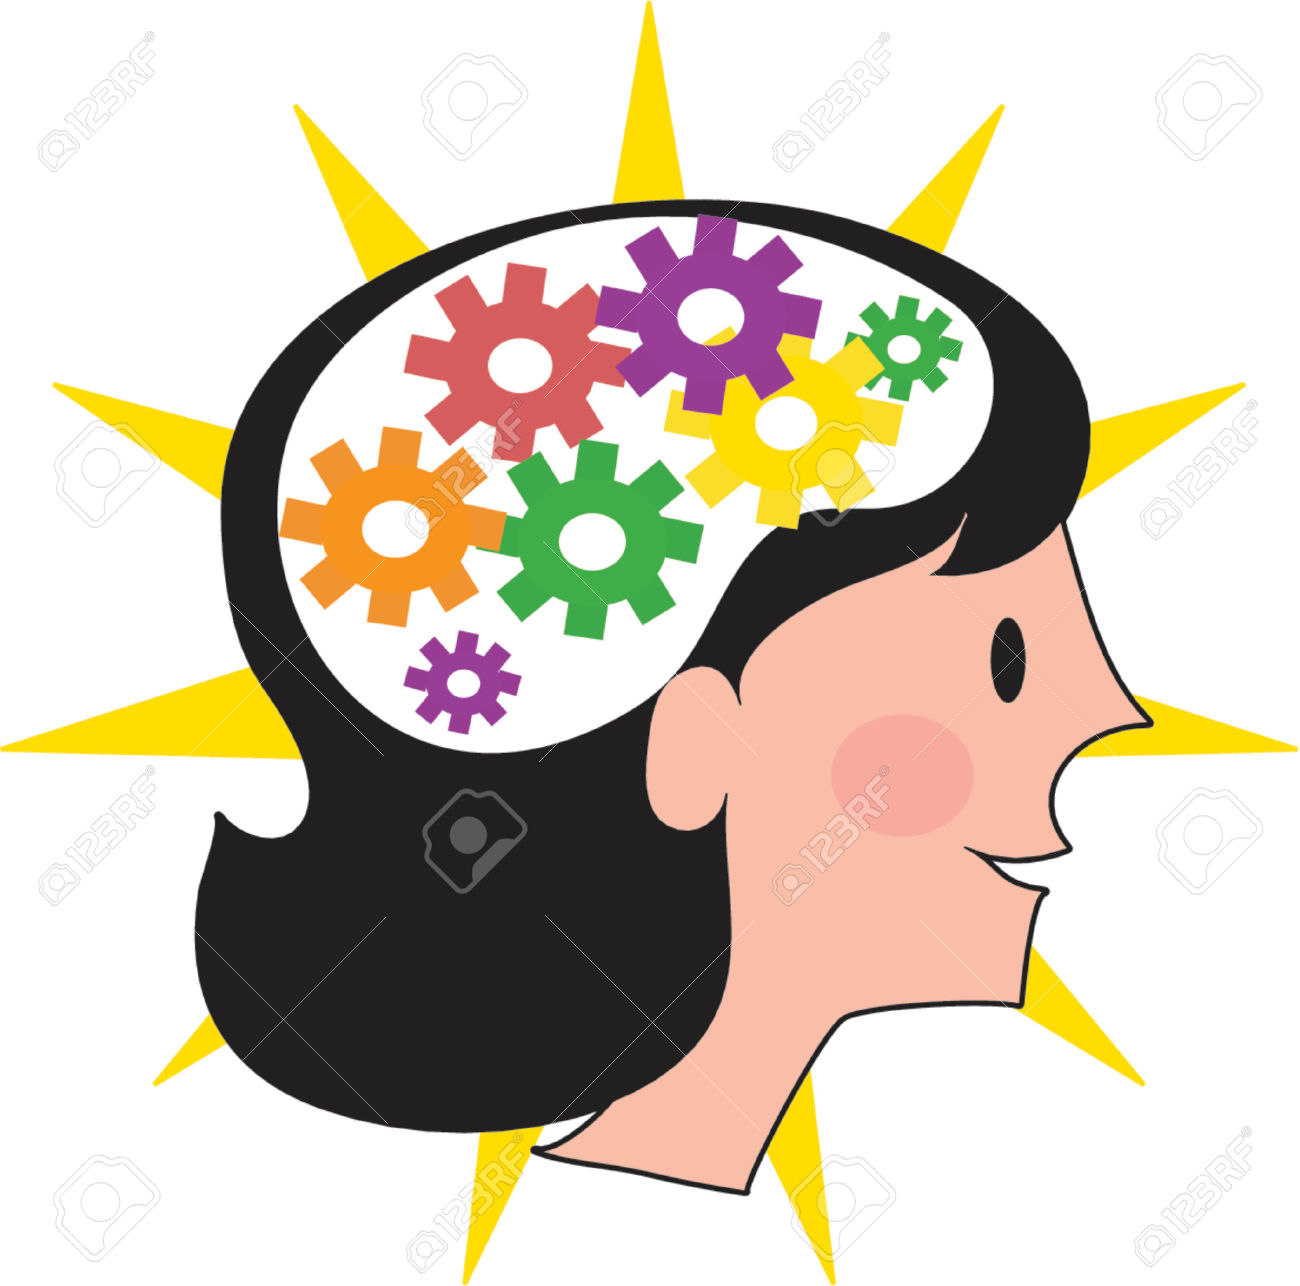 Smart brain clipart 8 » Clipart Station.